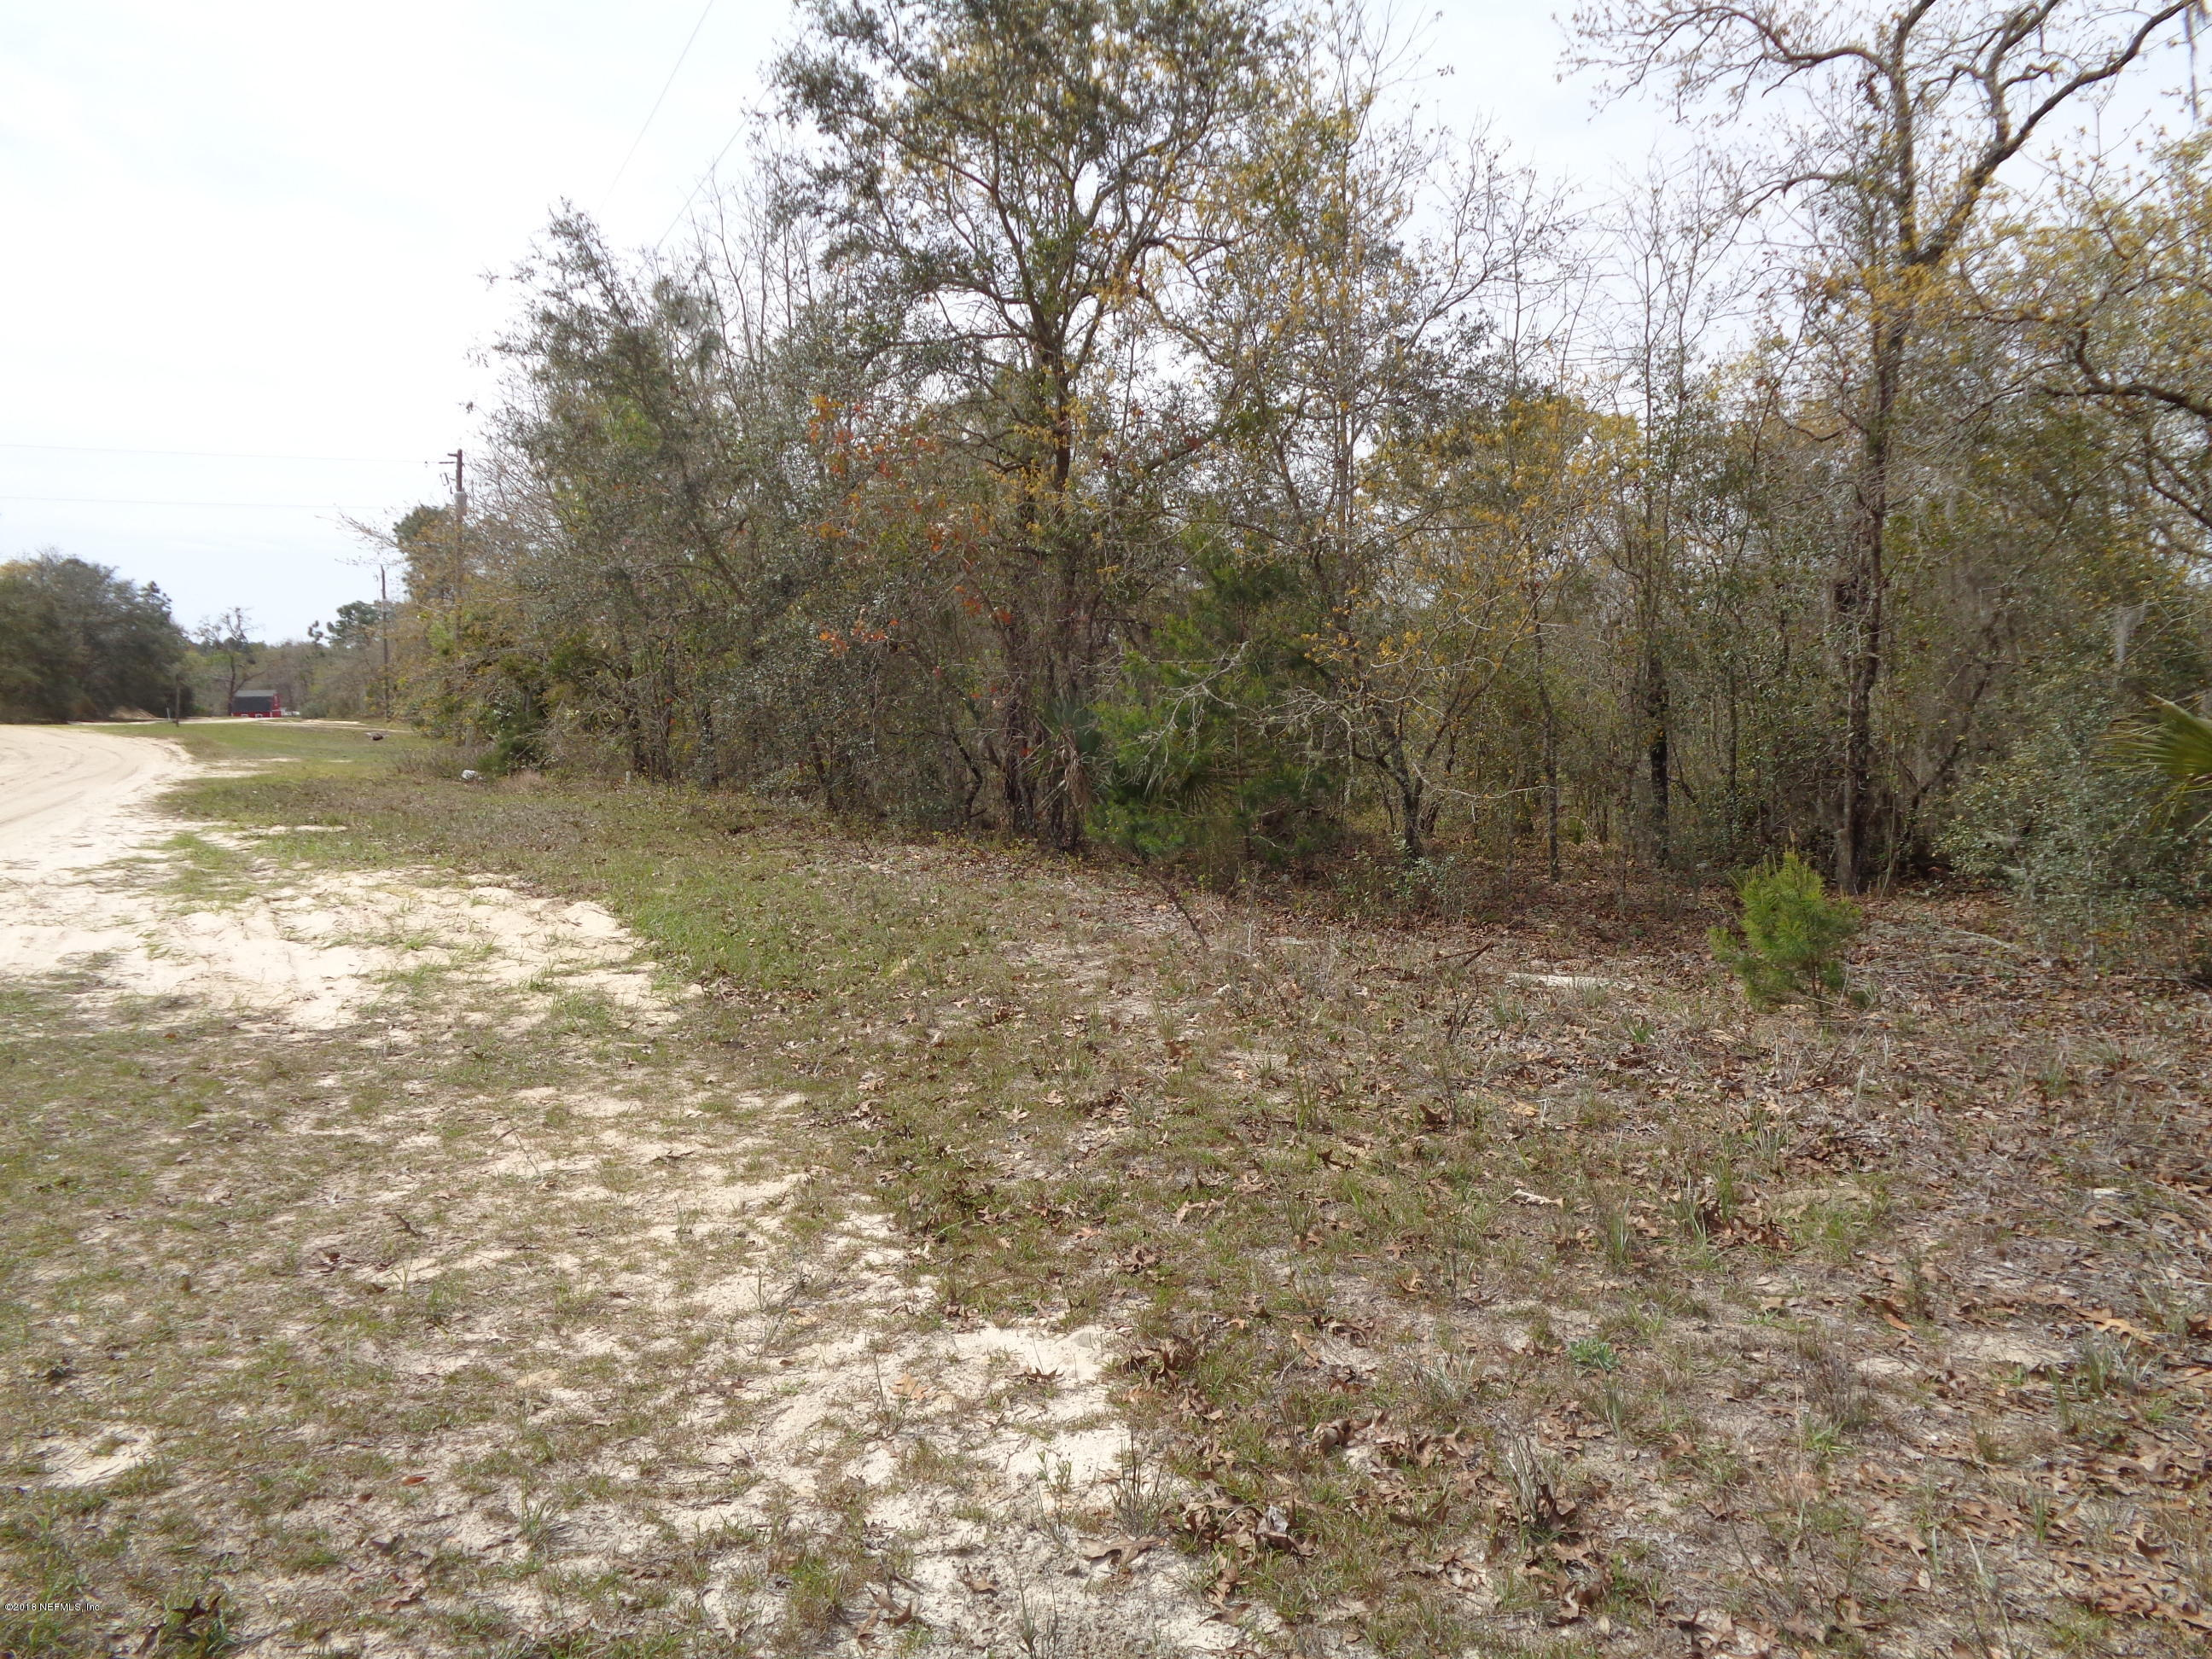 0 LONG BRANCH, INTERLACHEN, FLORIDA 32148, ,Vacant land,For sale,LONG BRANCH,1091223